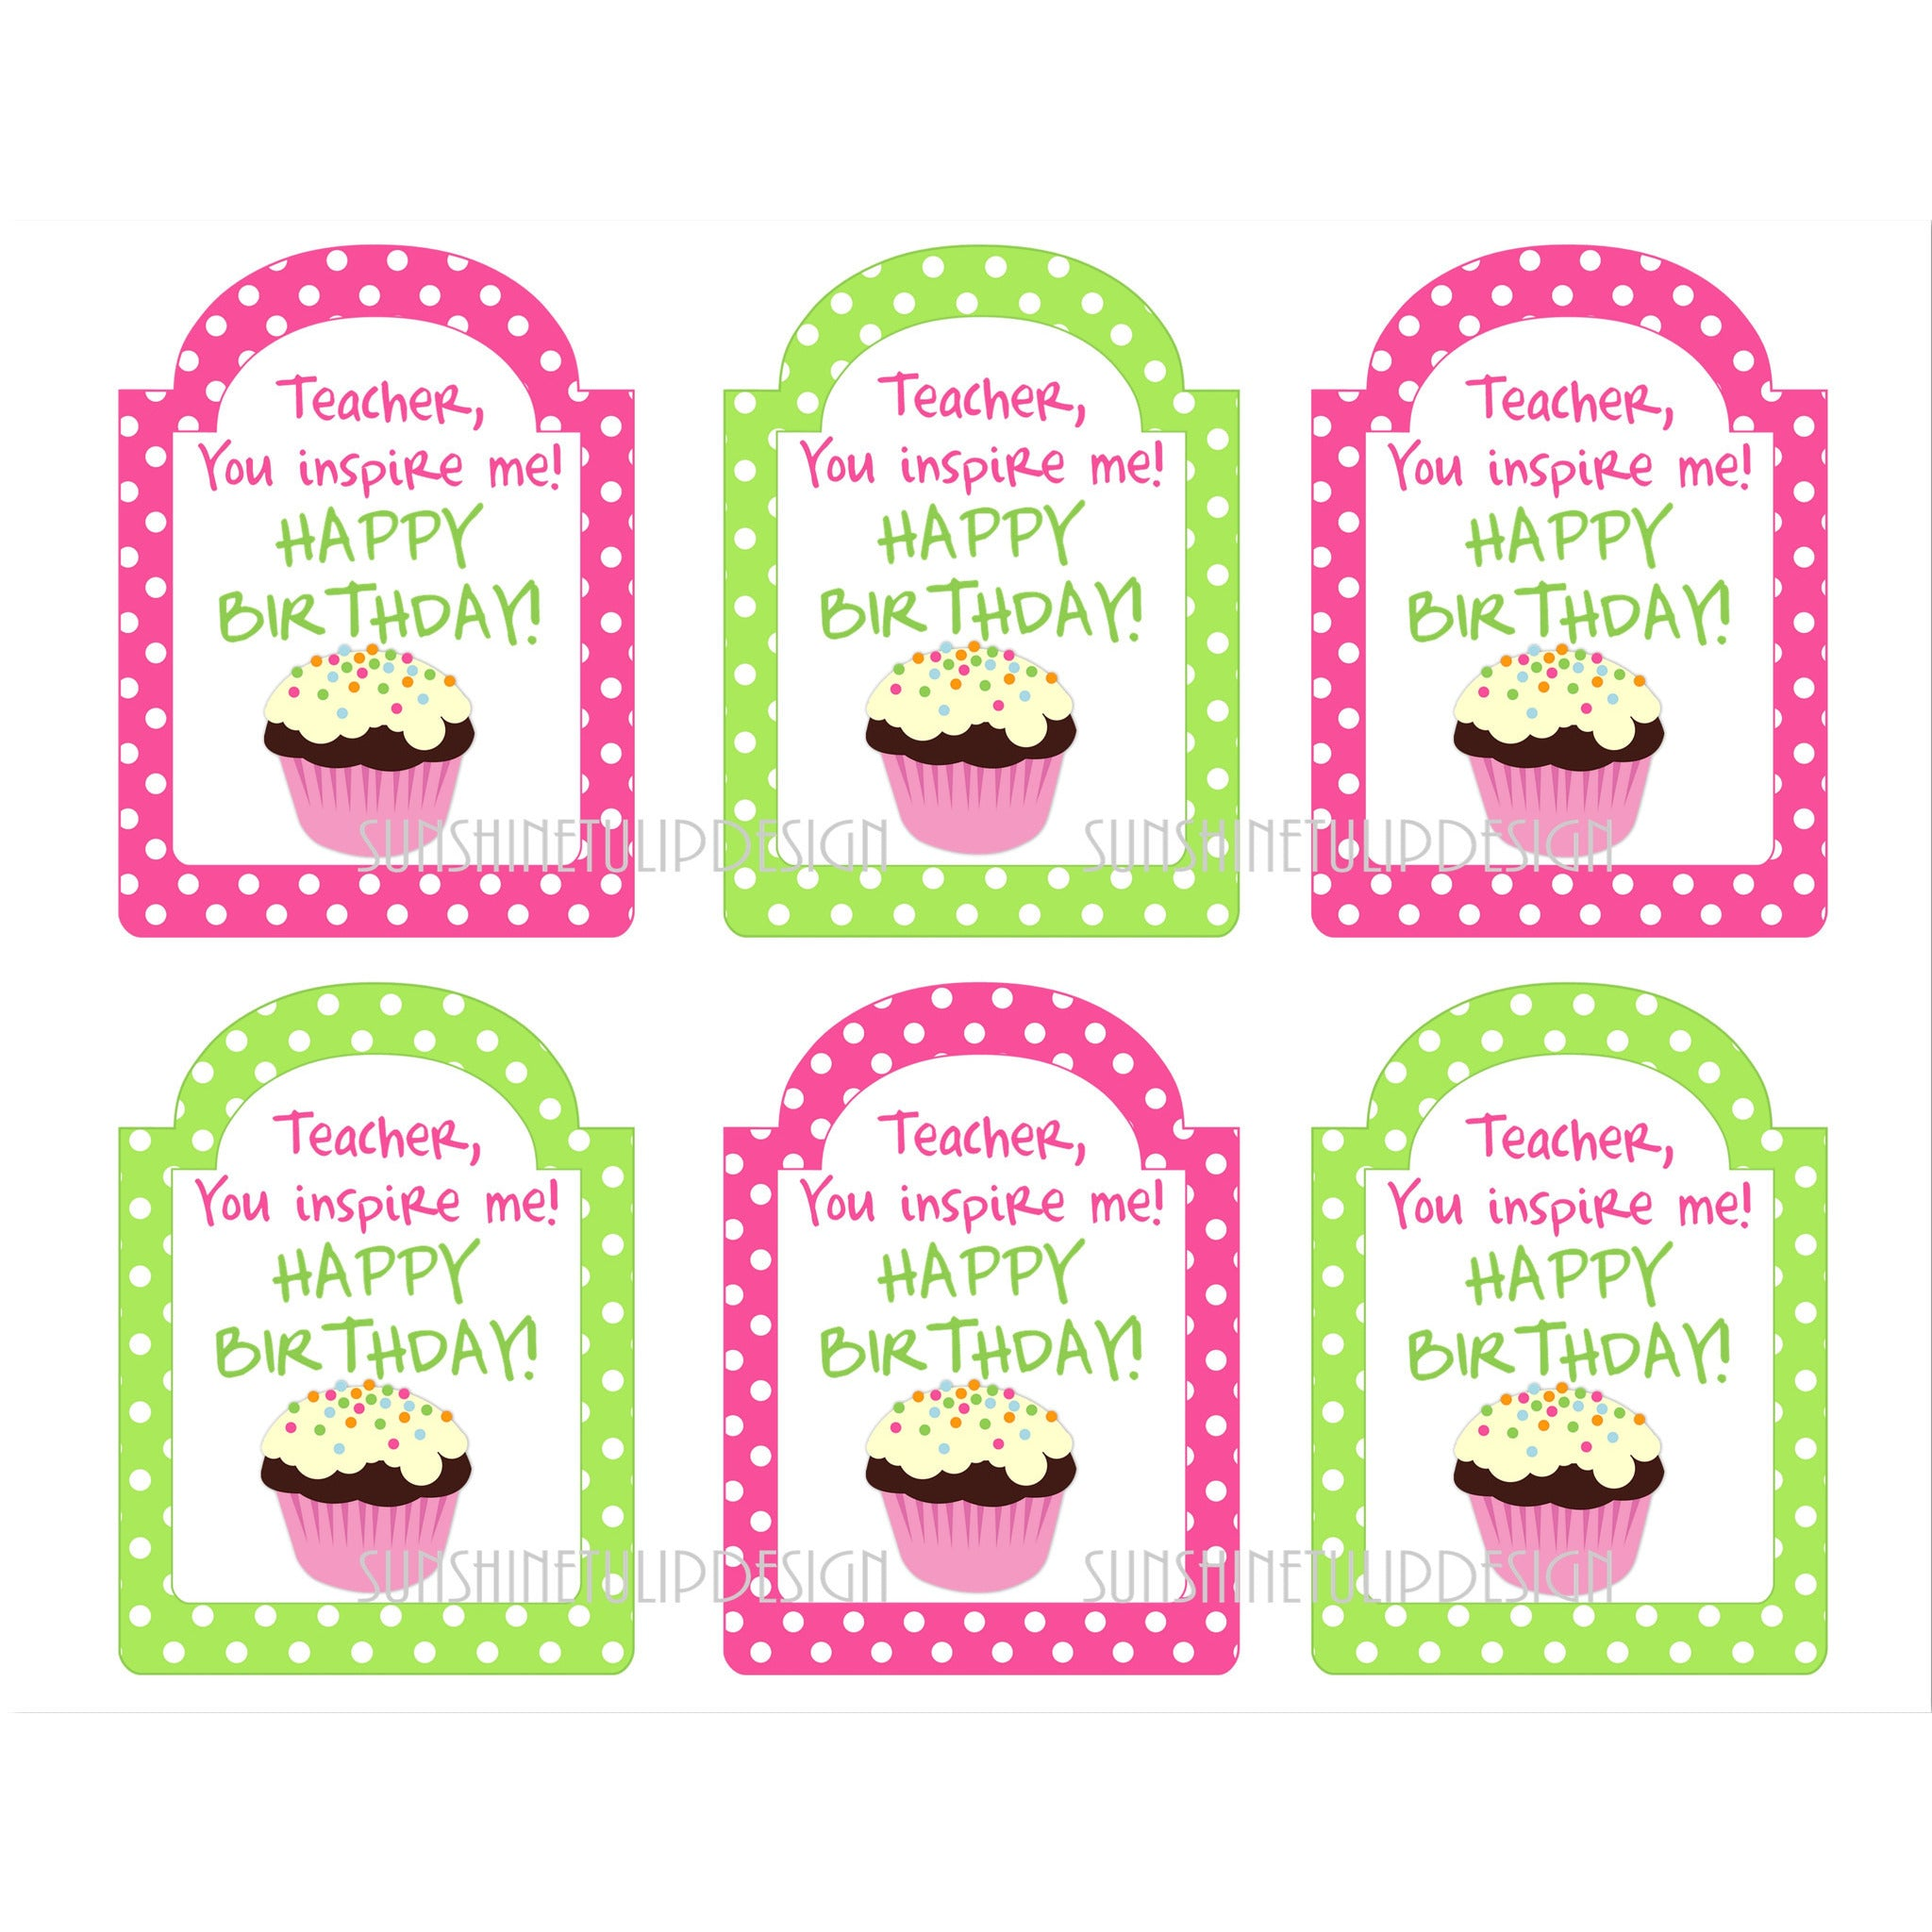 Printable Teacher Birthday Gift Tags, Happy Birthday